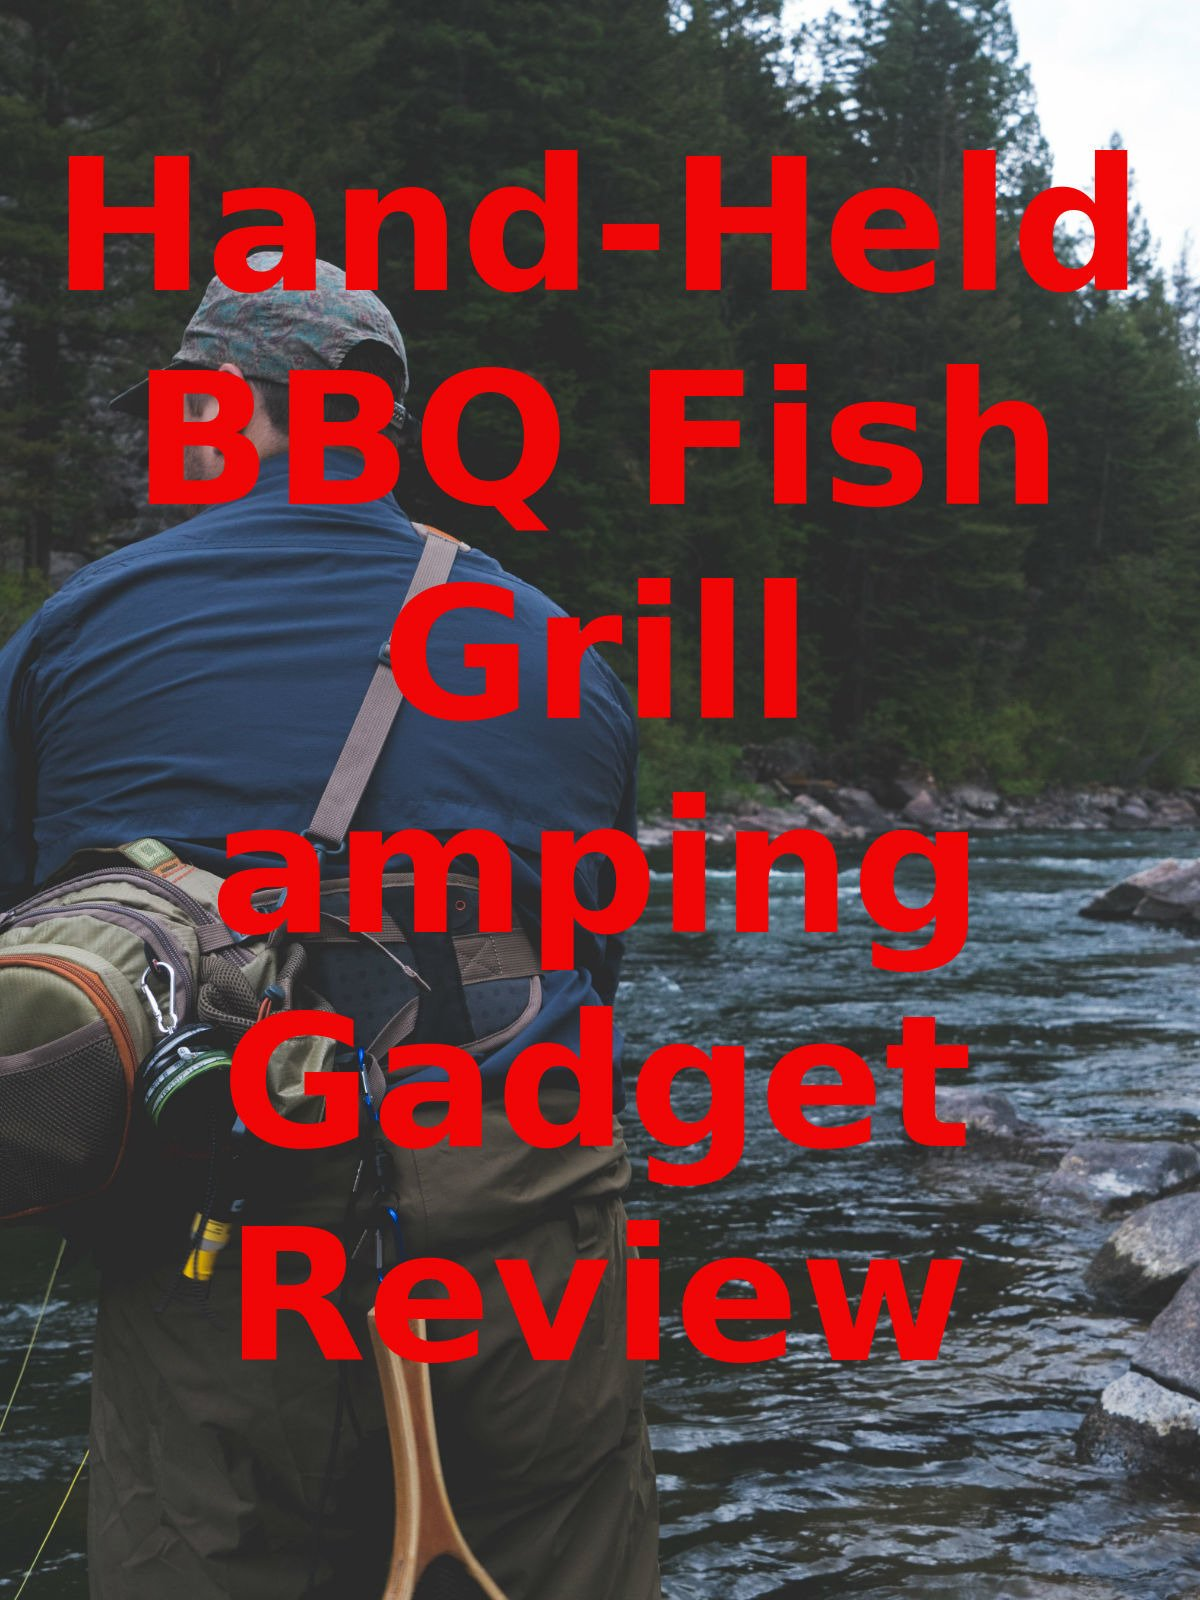 Review: Hand-Held BBQ Fish Grill Camping Gadget Review on Amazon Prime Video UK